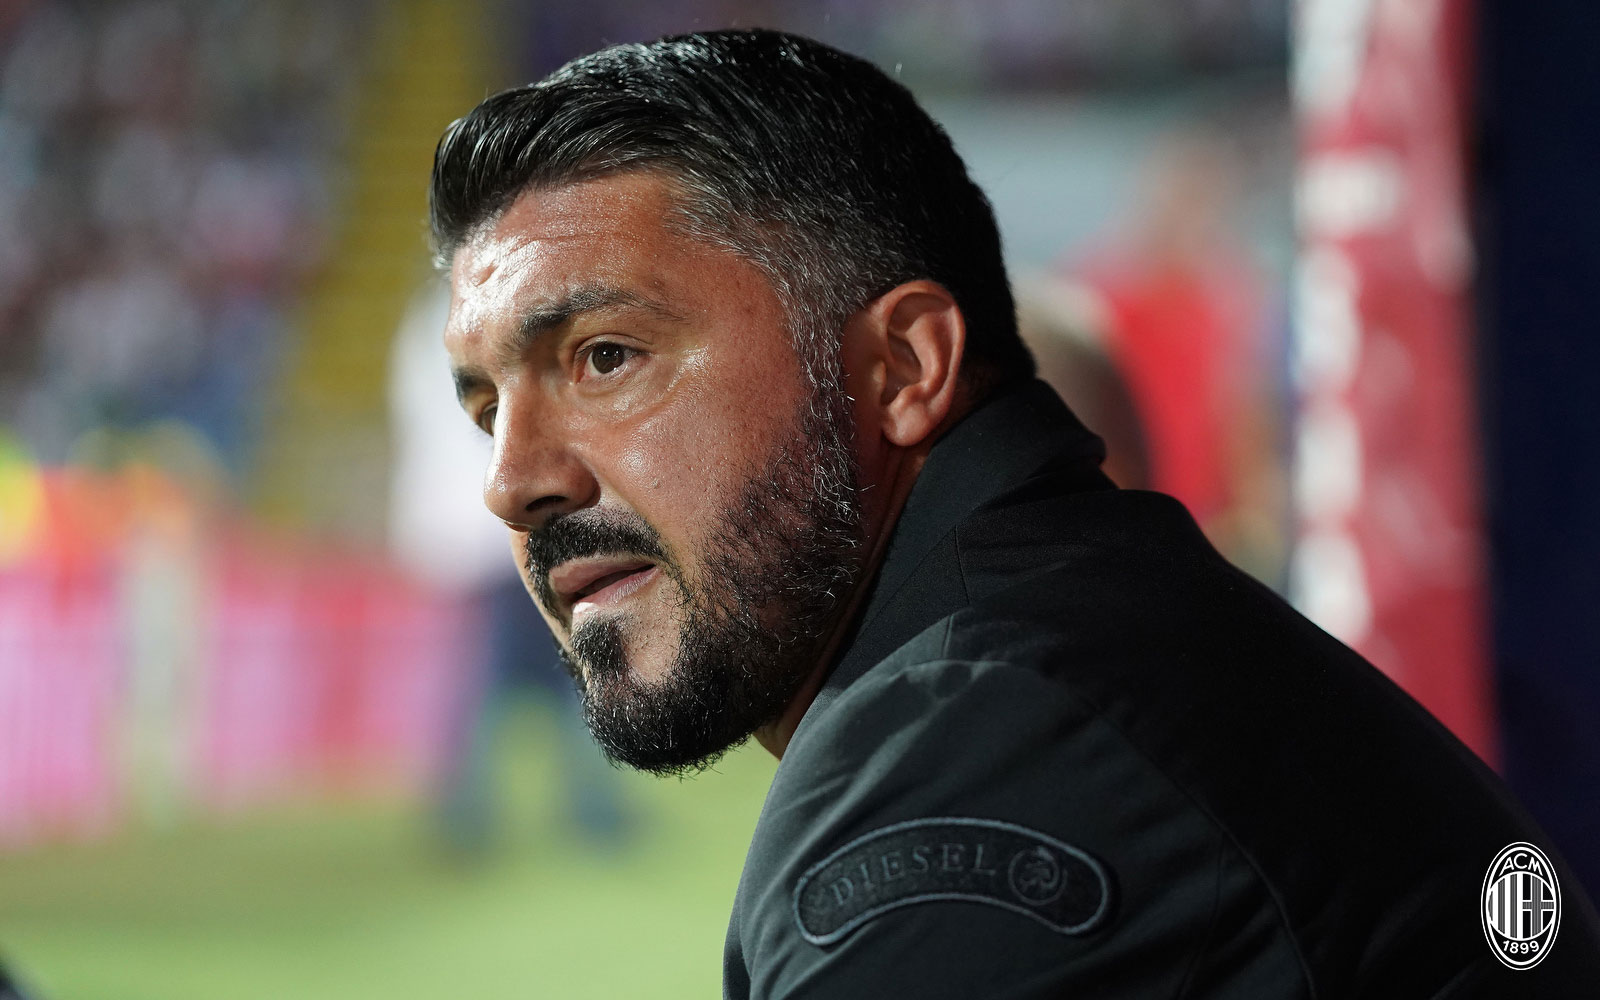 Gennaro Gattuso during Cagliari-Milan at Sardegna Arena on September 16, 2018. (@acmilan.com)